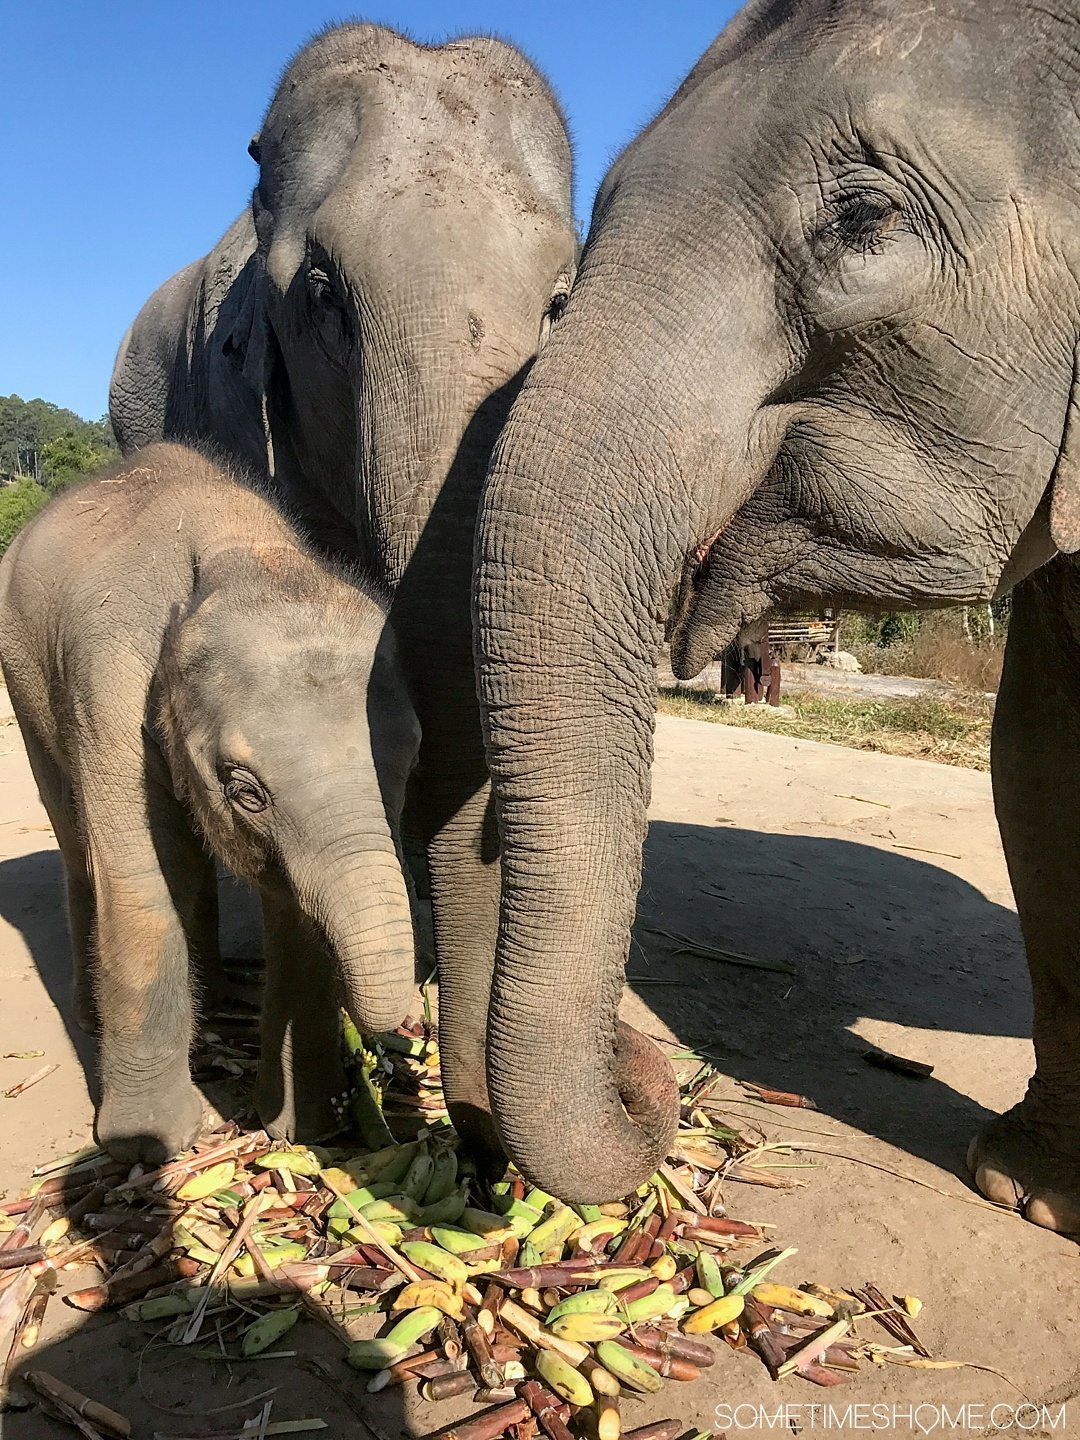 Vital FAQs Answered About Patara Elephant Farm in Chiang Mai. Information by Sometimes Home travel blog. A photo of three generations of elephants, a mother, grandmother and baby.